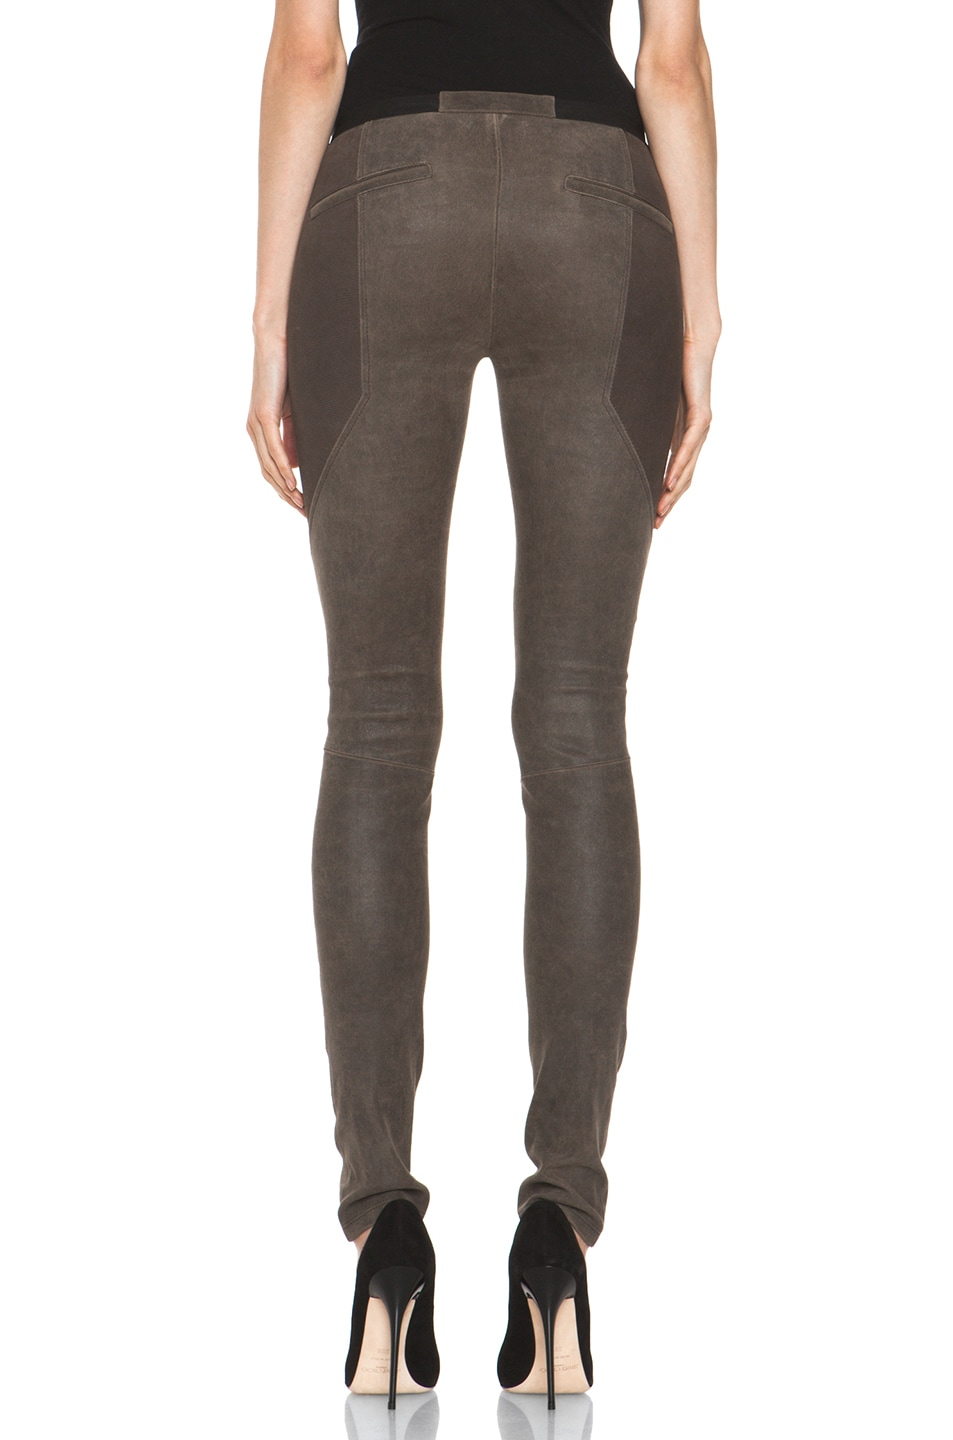 Image 4 of Helmut Lang Patina Stretch Cheyenne Leather Armor Legging in Deer